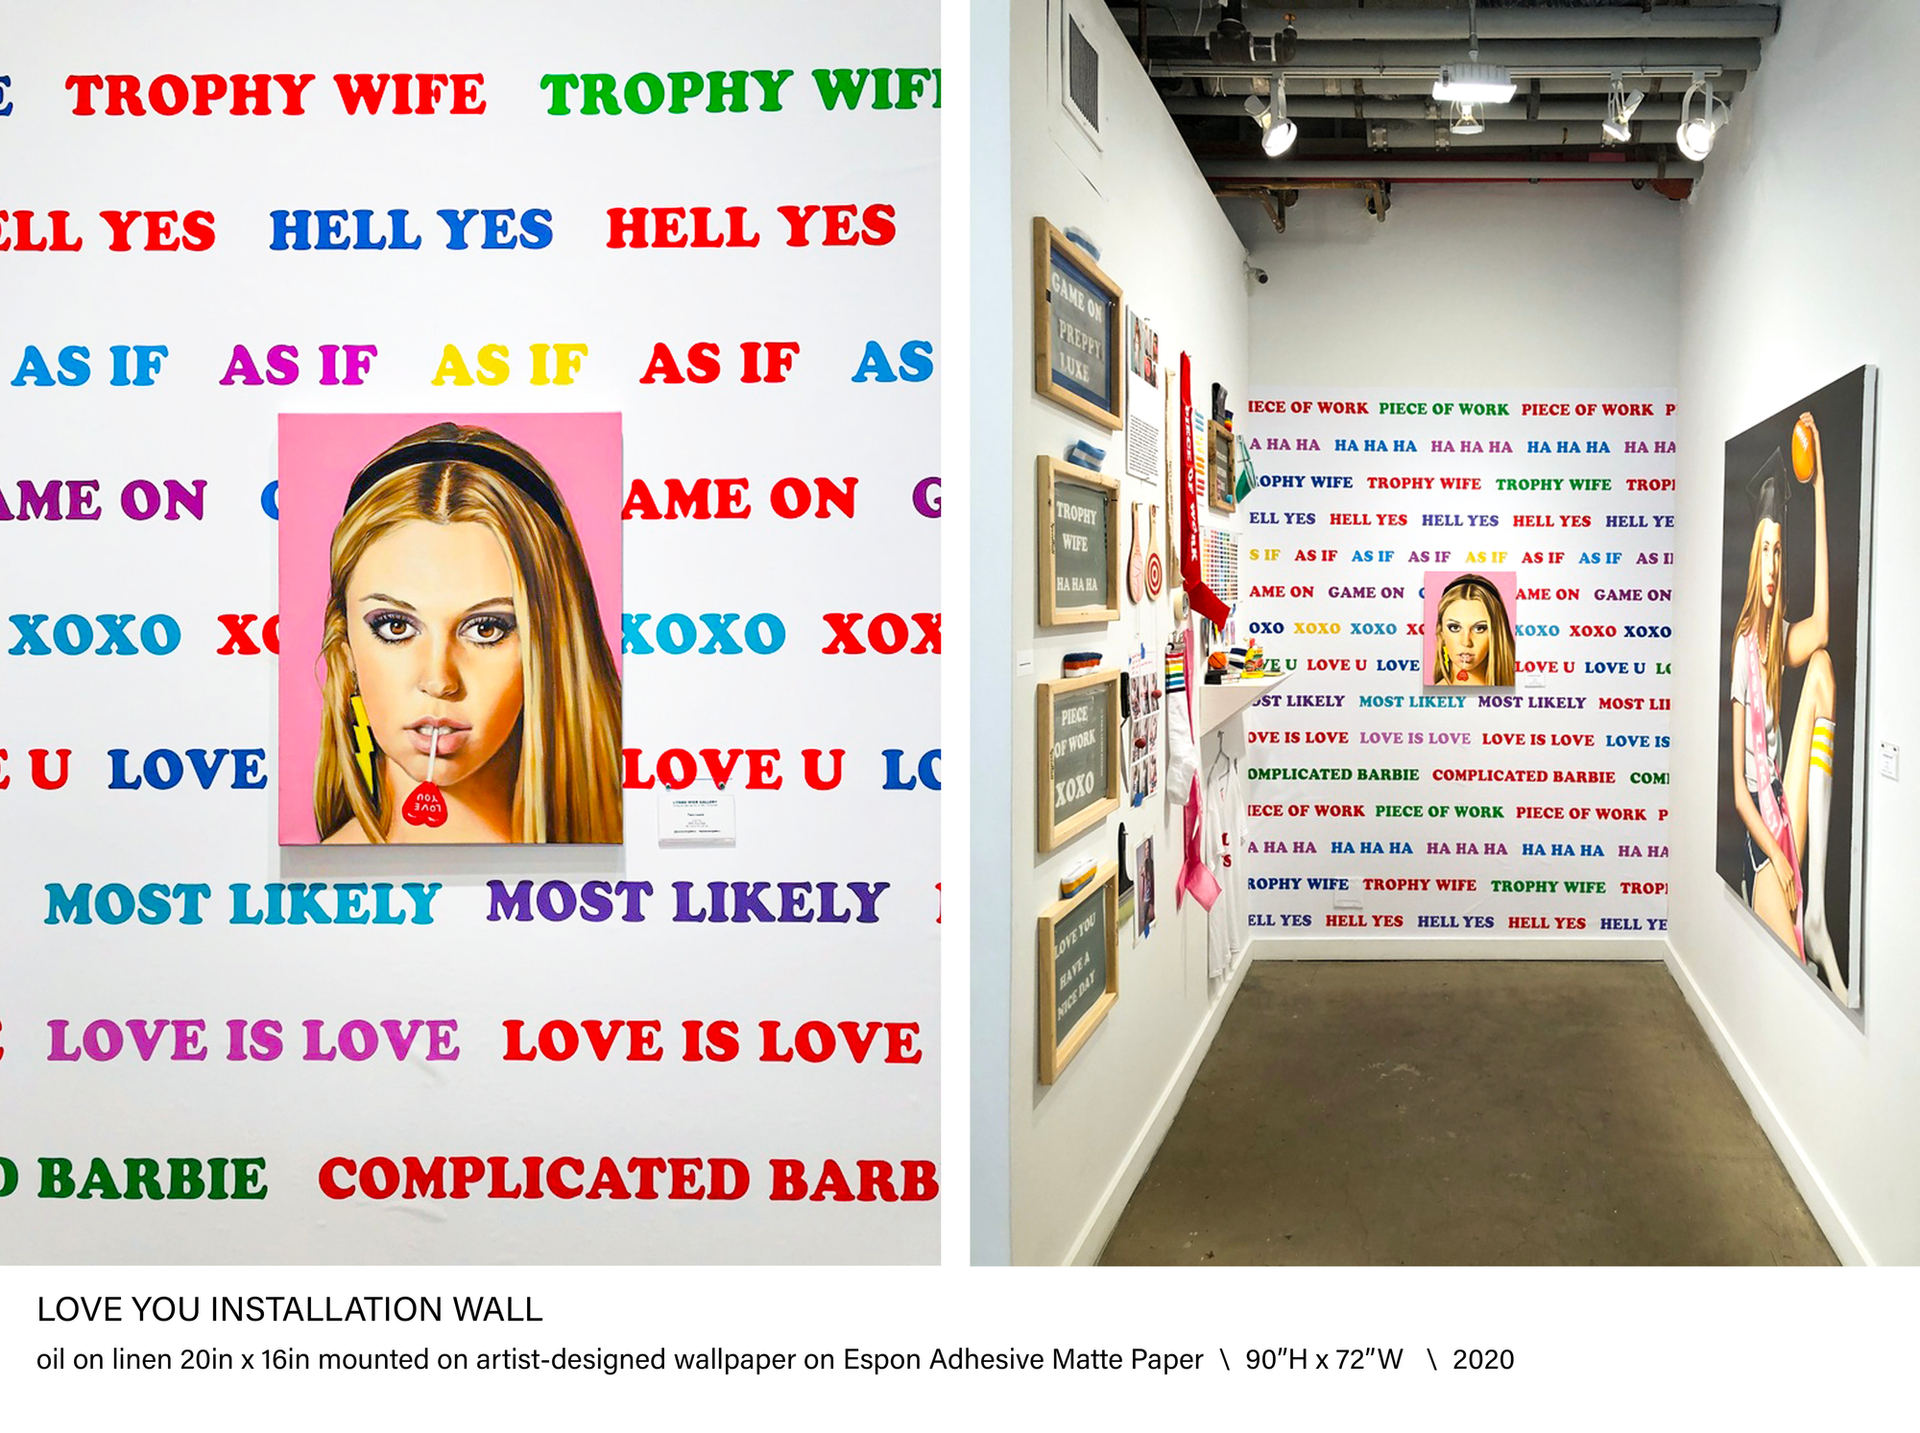 LOVE YOU Installation Wall